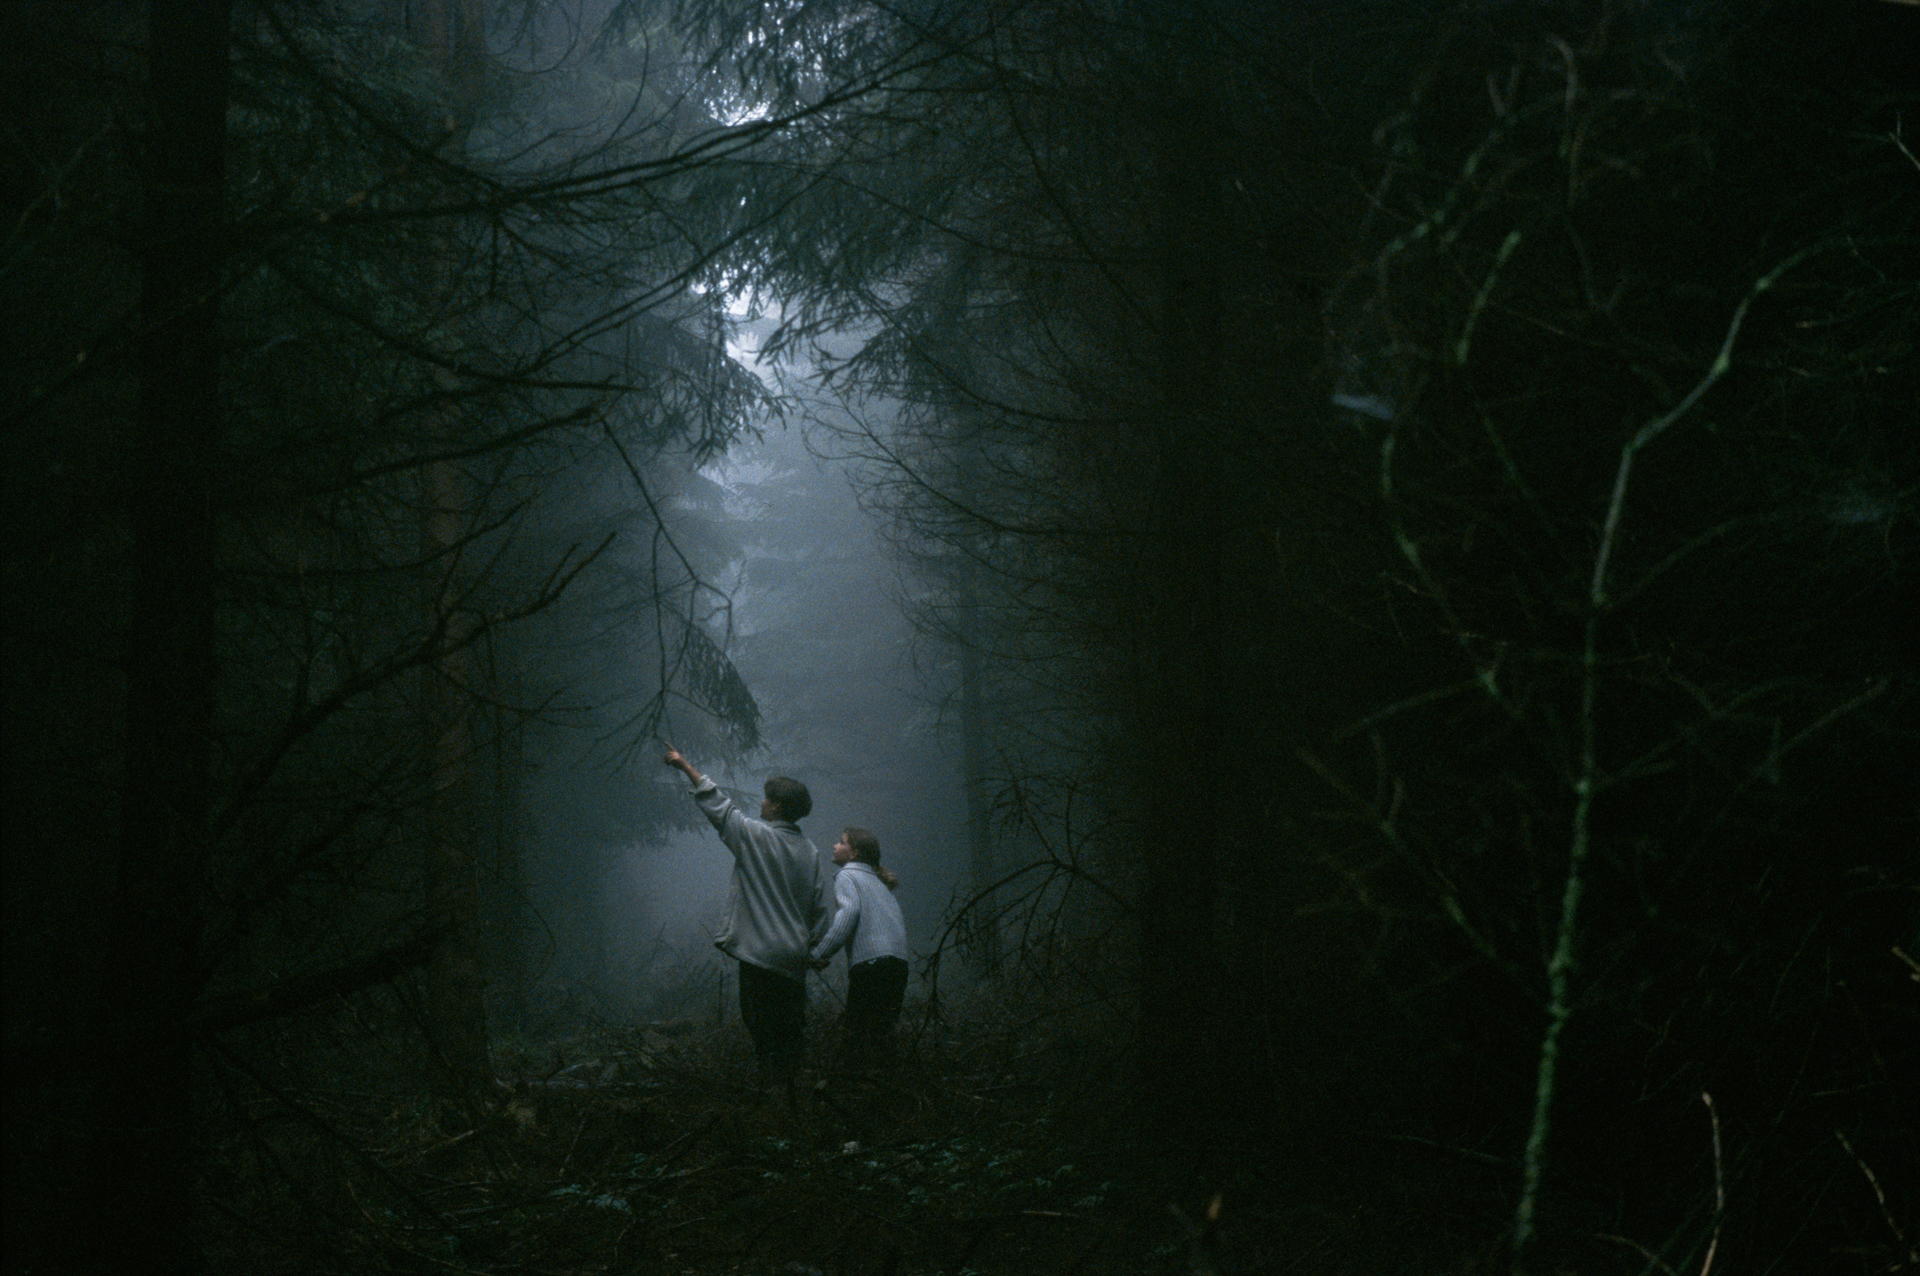 Two youngsters explore the dark forests during a field trip.  Hoher Meisner Mountains, Germany